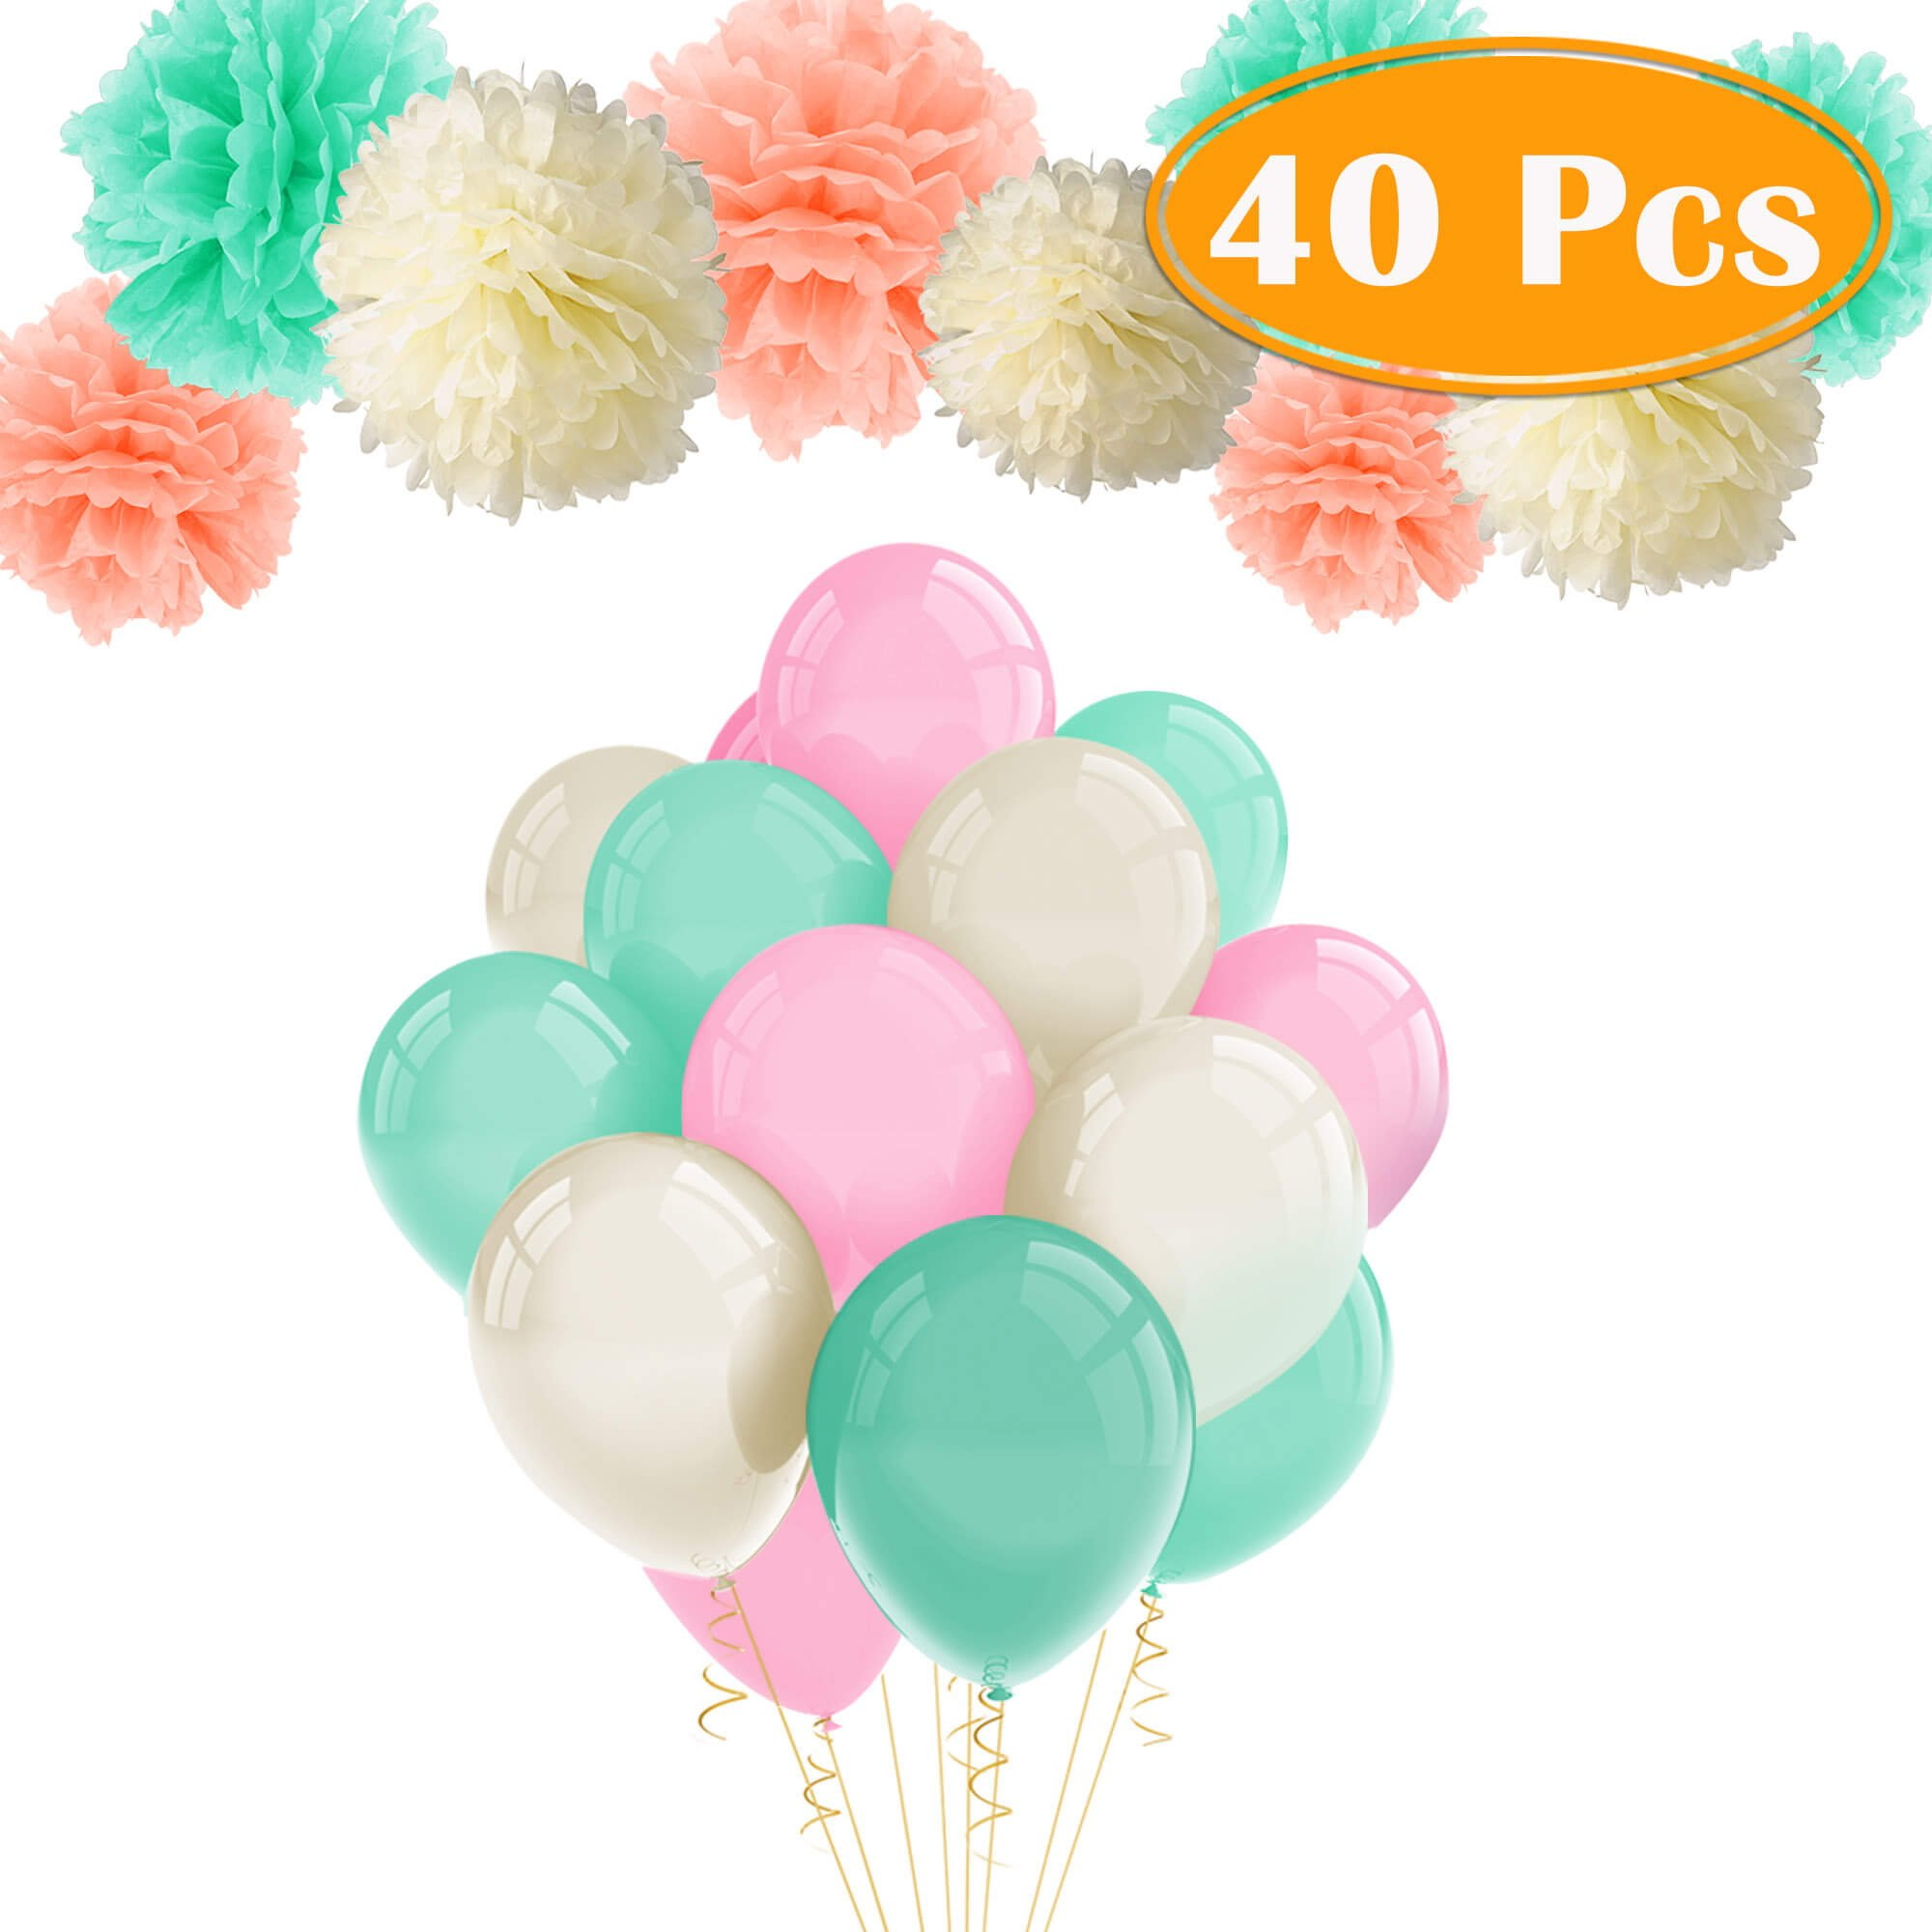 Paper Tissue Pompoms for Celebrations /& Events : Neutral Color Flower Decorations White, Ivory, Peach, Champagne Epique Occasions Weddings Party Decor Pom Pom Set Birthday Baby /& Bridal Showers 20 pcs